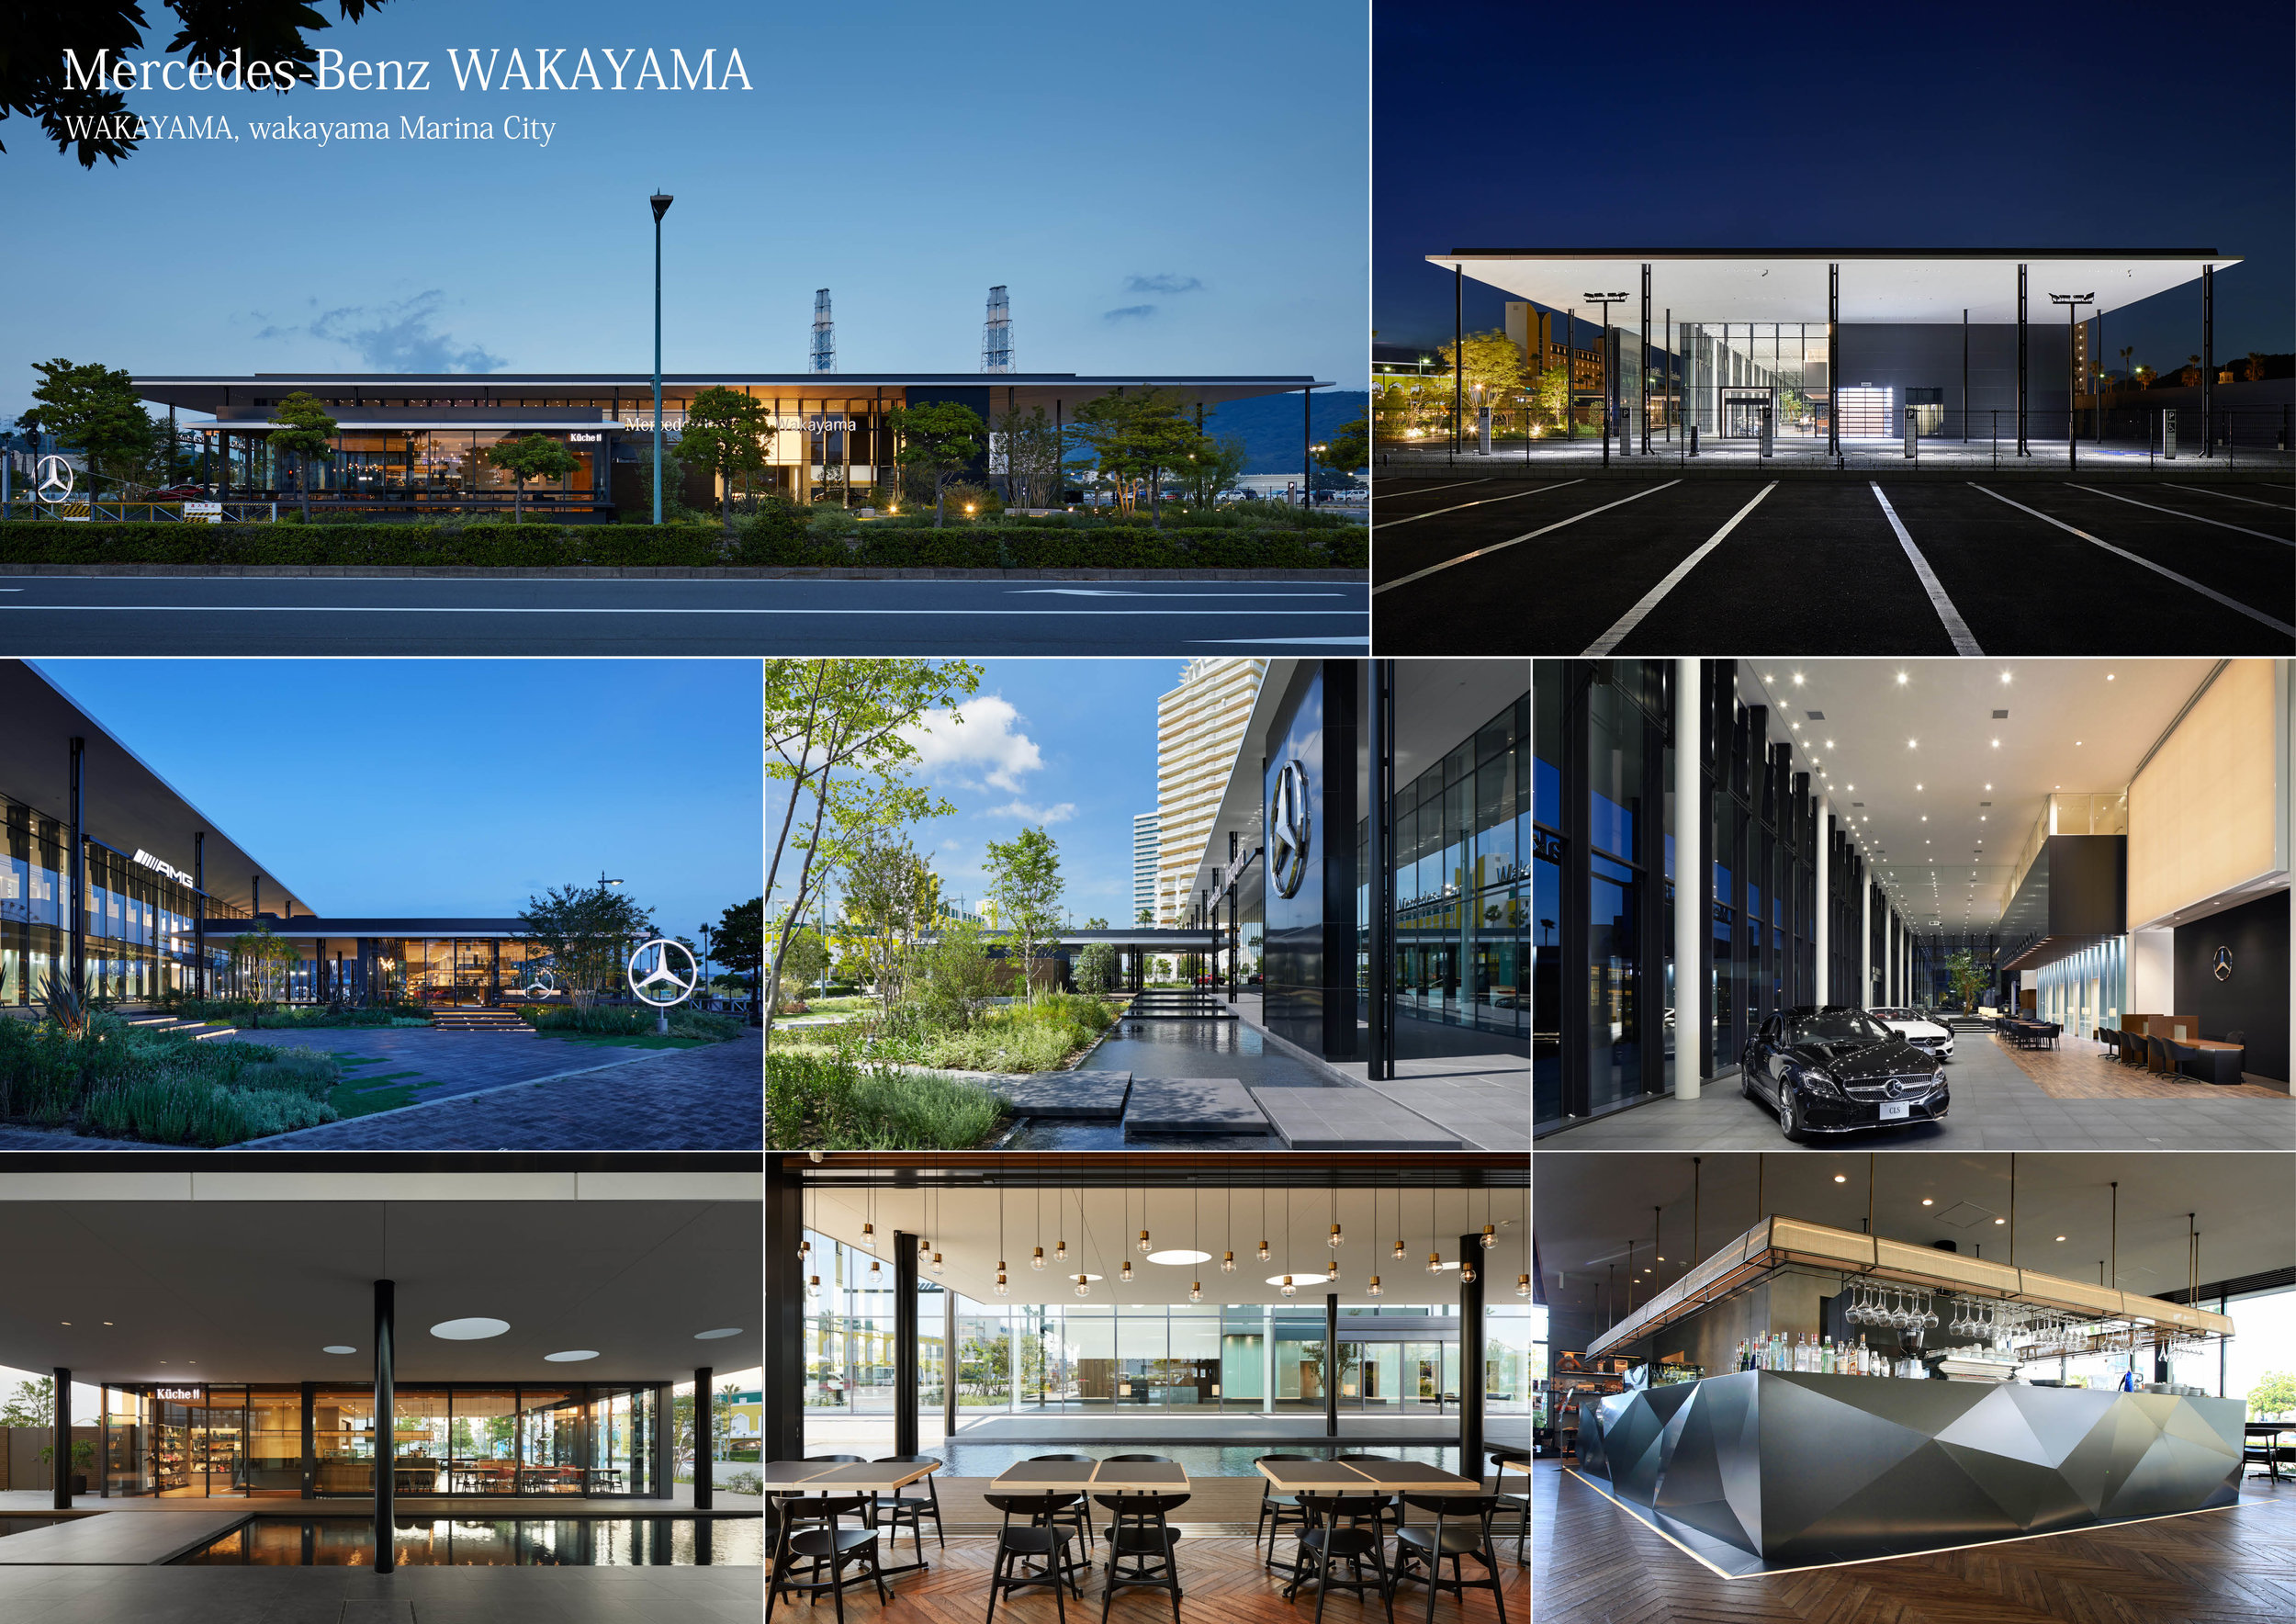 Project Name: Mercedes-Benz WAKAYAMA - Design by: Kubota Architects & Associates Inc.Architecture Division: Commercial - ShowroomWebsite: http://www.ka-a.co.jp